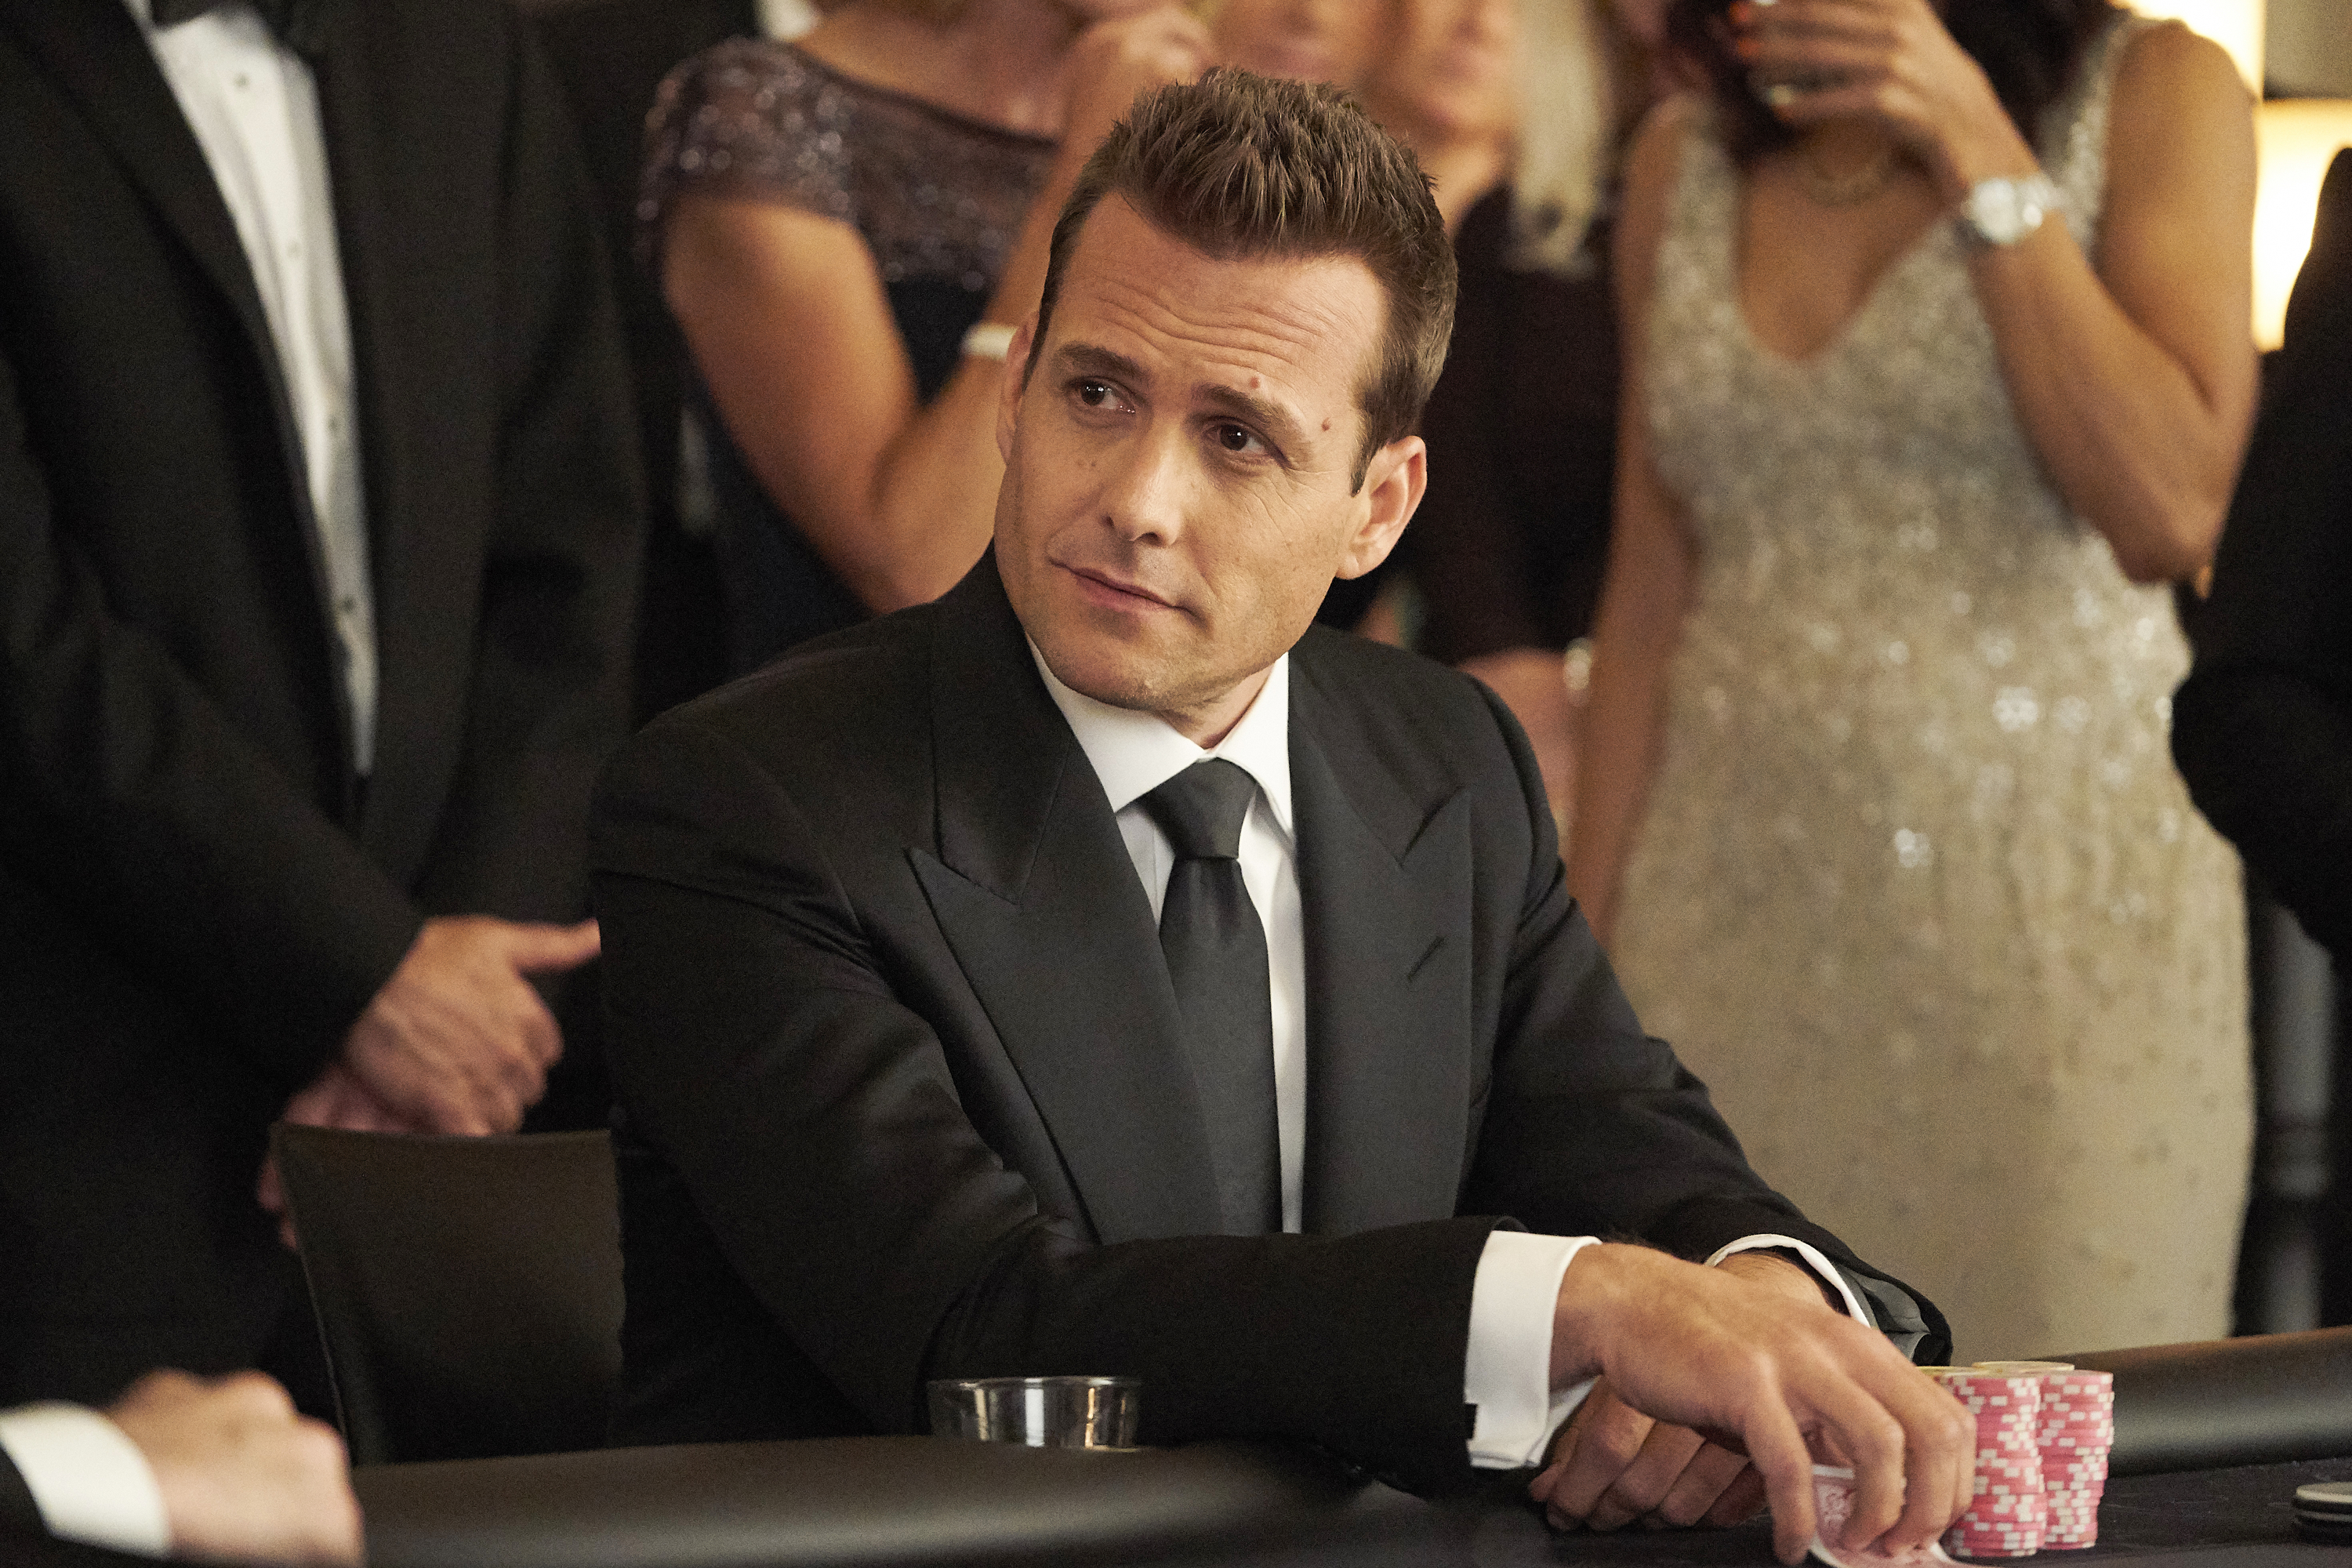 suits creator aaron korsh shares final season plans who may return deadline https deadline com 2019 01 suits final season spoilers creator aaron korsh meghan markle patrick j adams return ending spinoff 1202538942